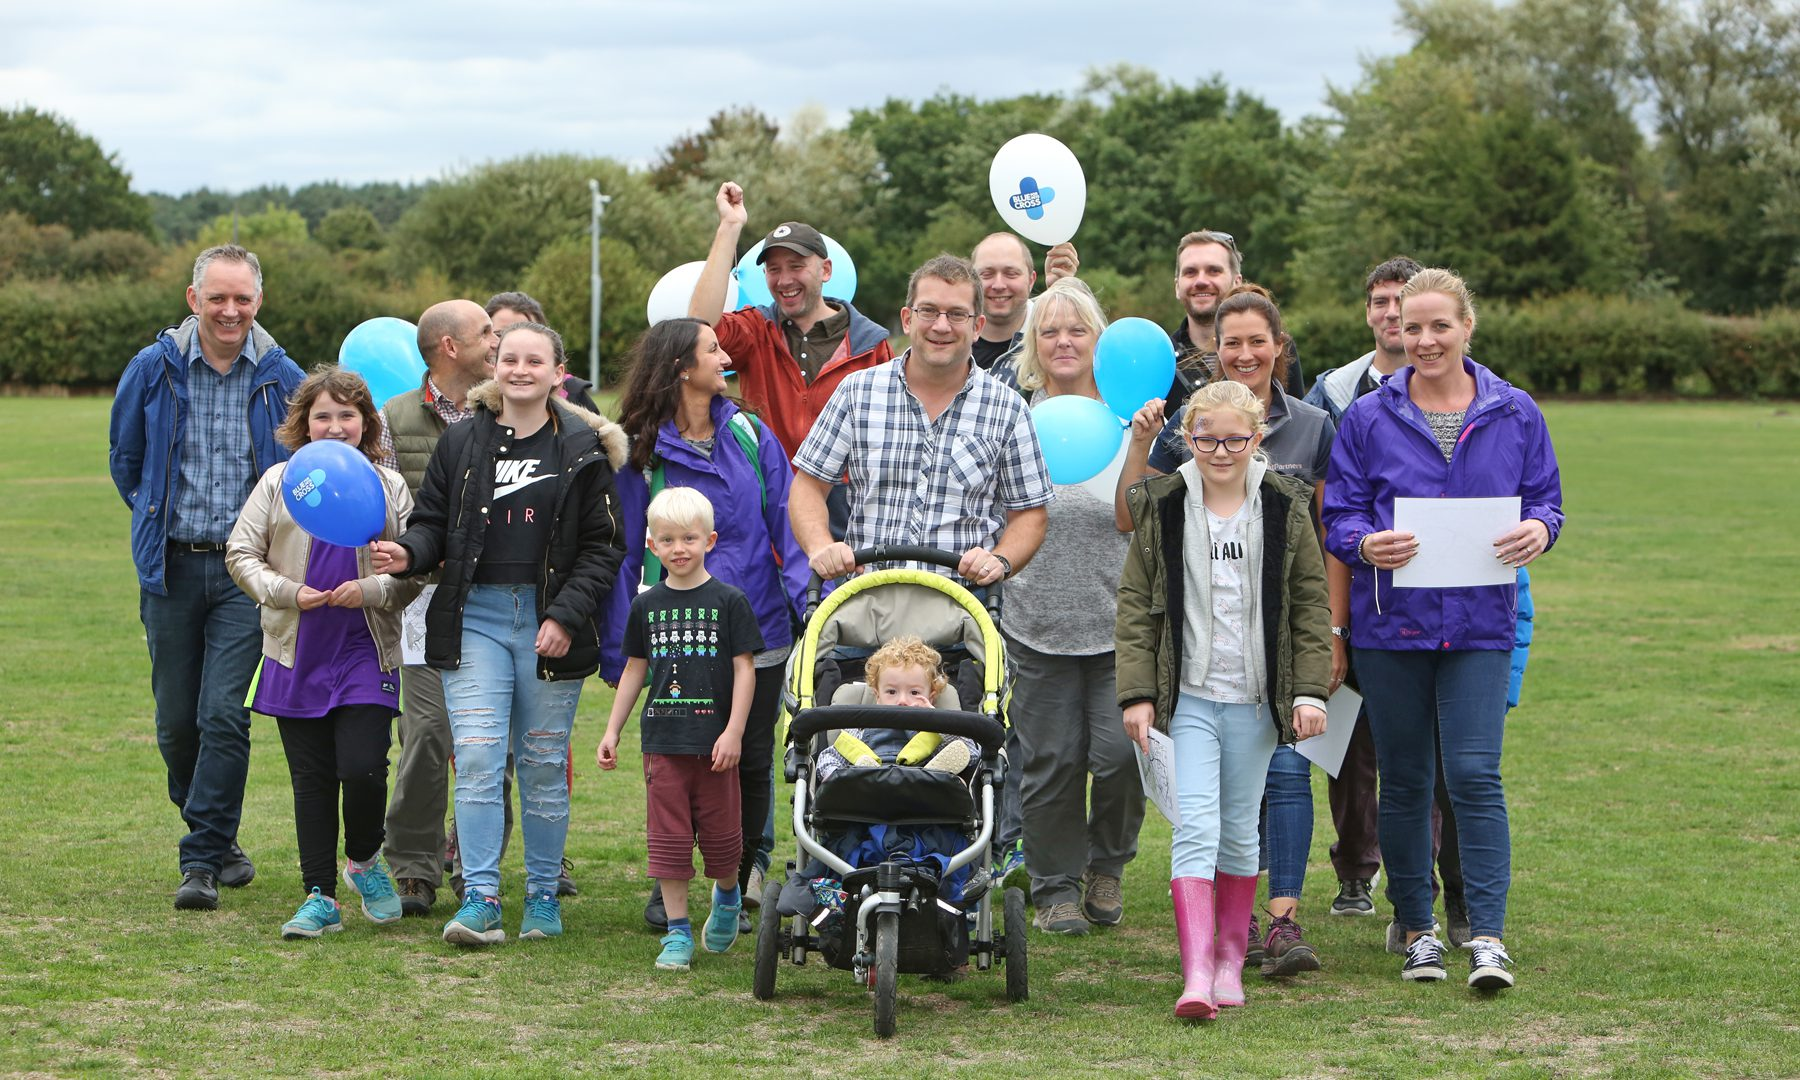 York veterinary group have fun in the sun for animal charity